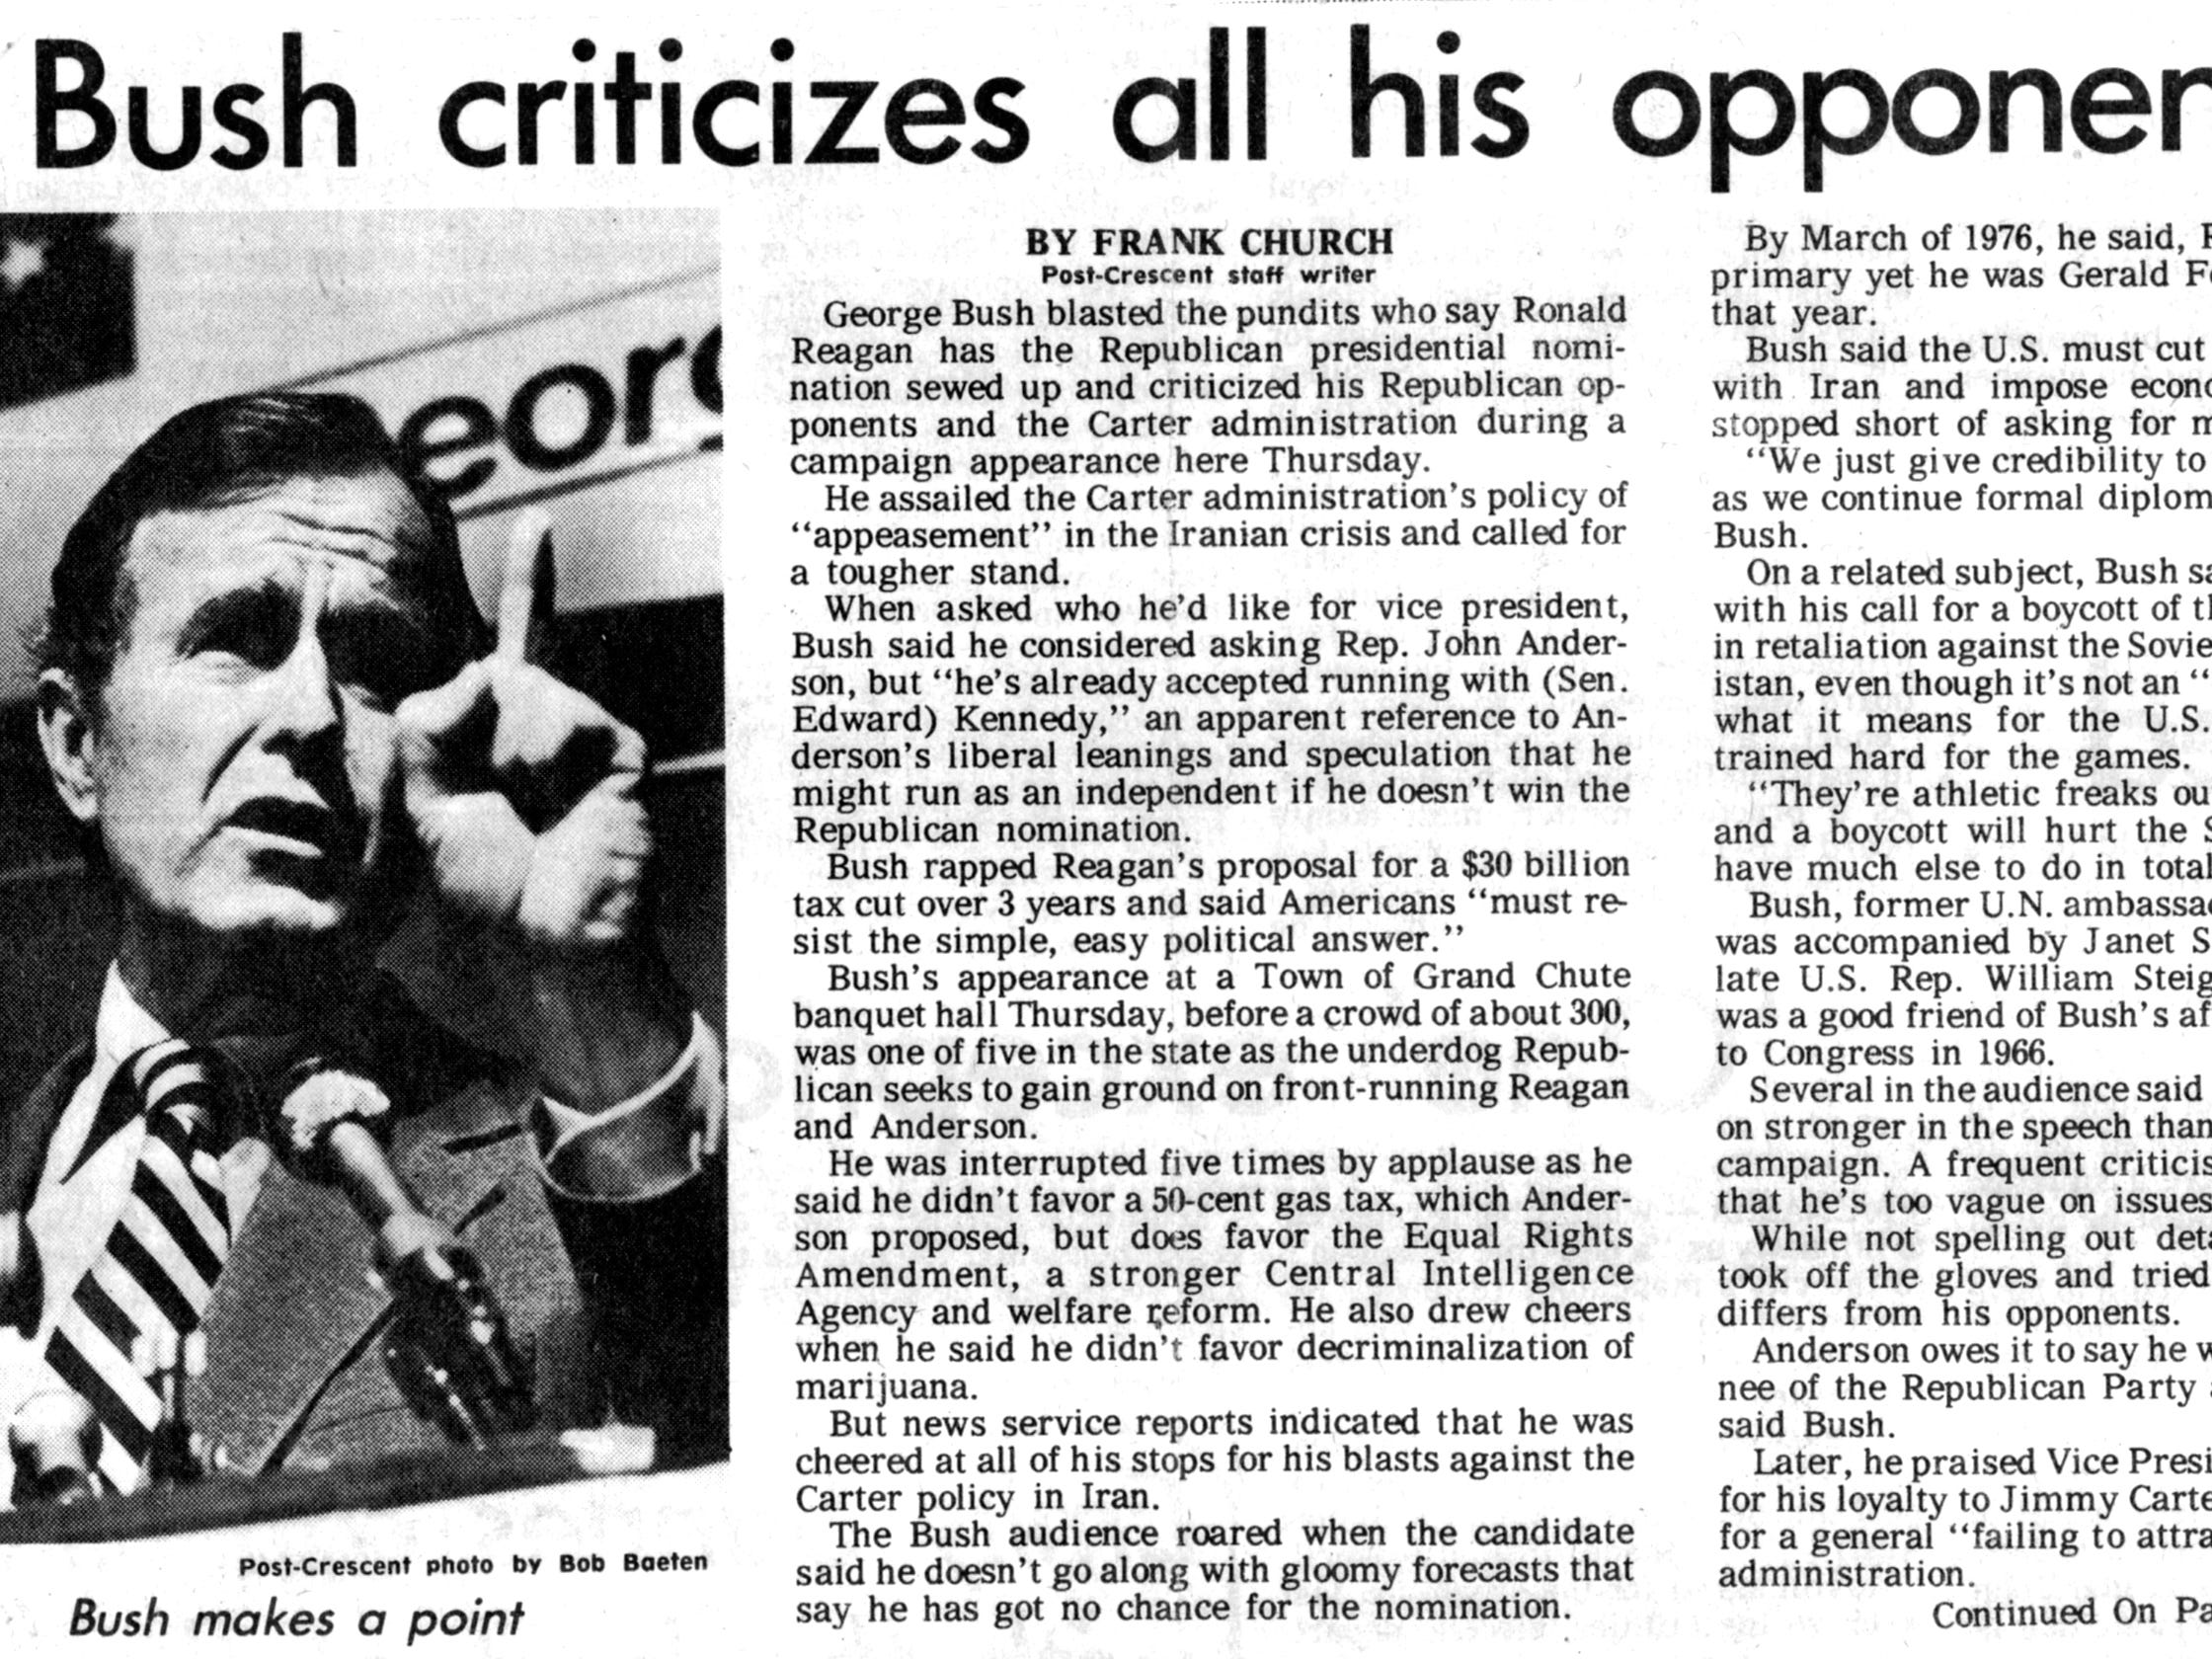 March 28, 1980. Republican presidential candidate George H. W. Bush criticizes all his opponents story by Frank Chuch in The Post-Crescent.